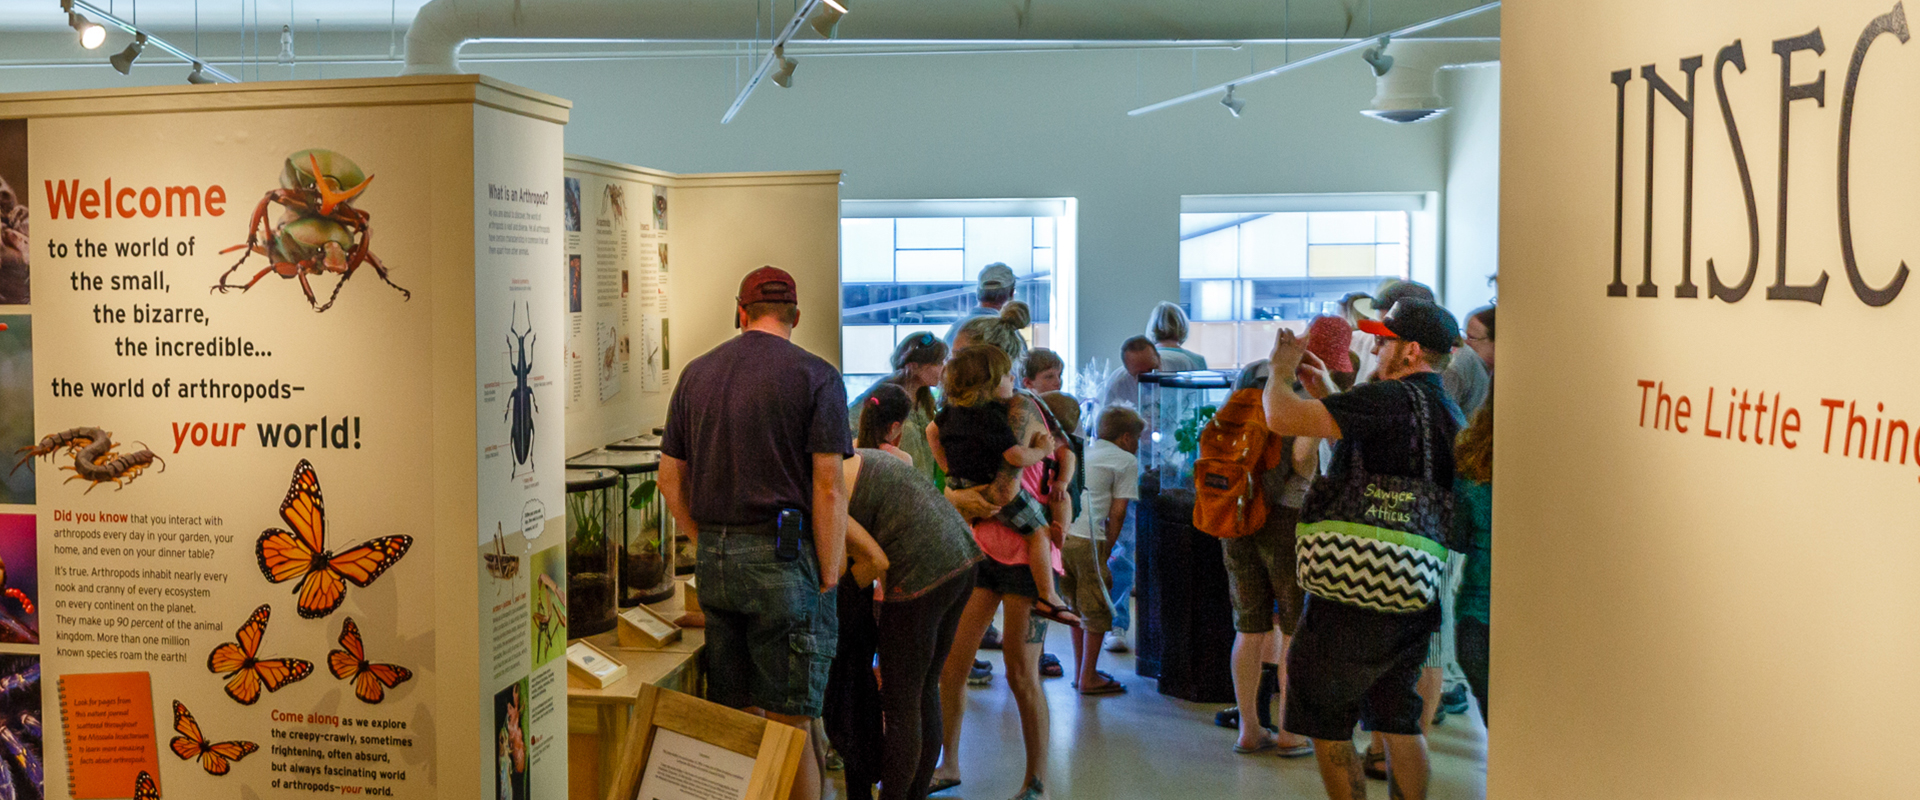 missoula insectarium - get involved-donate, volunteer, share information